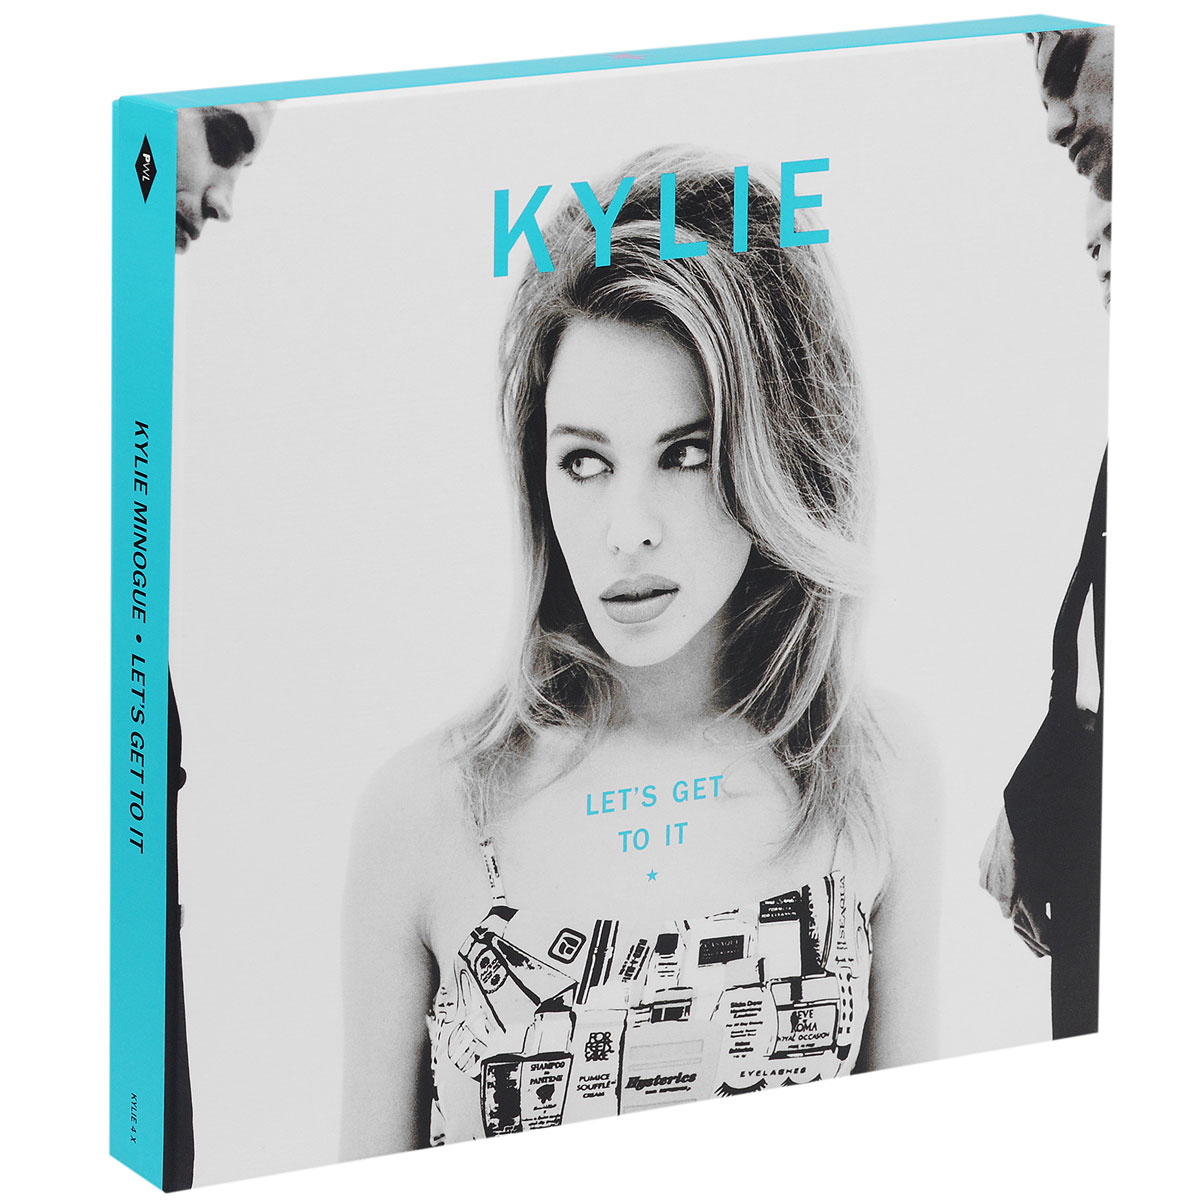 Кайли Миноуг Kylie Minogue. Let's Get To It (2 CD + DVD + LP) fry s more fool me a memoir